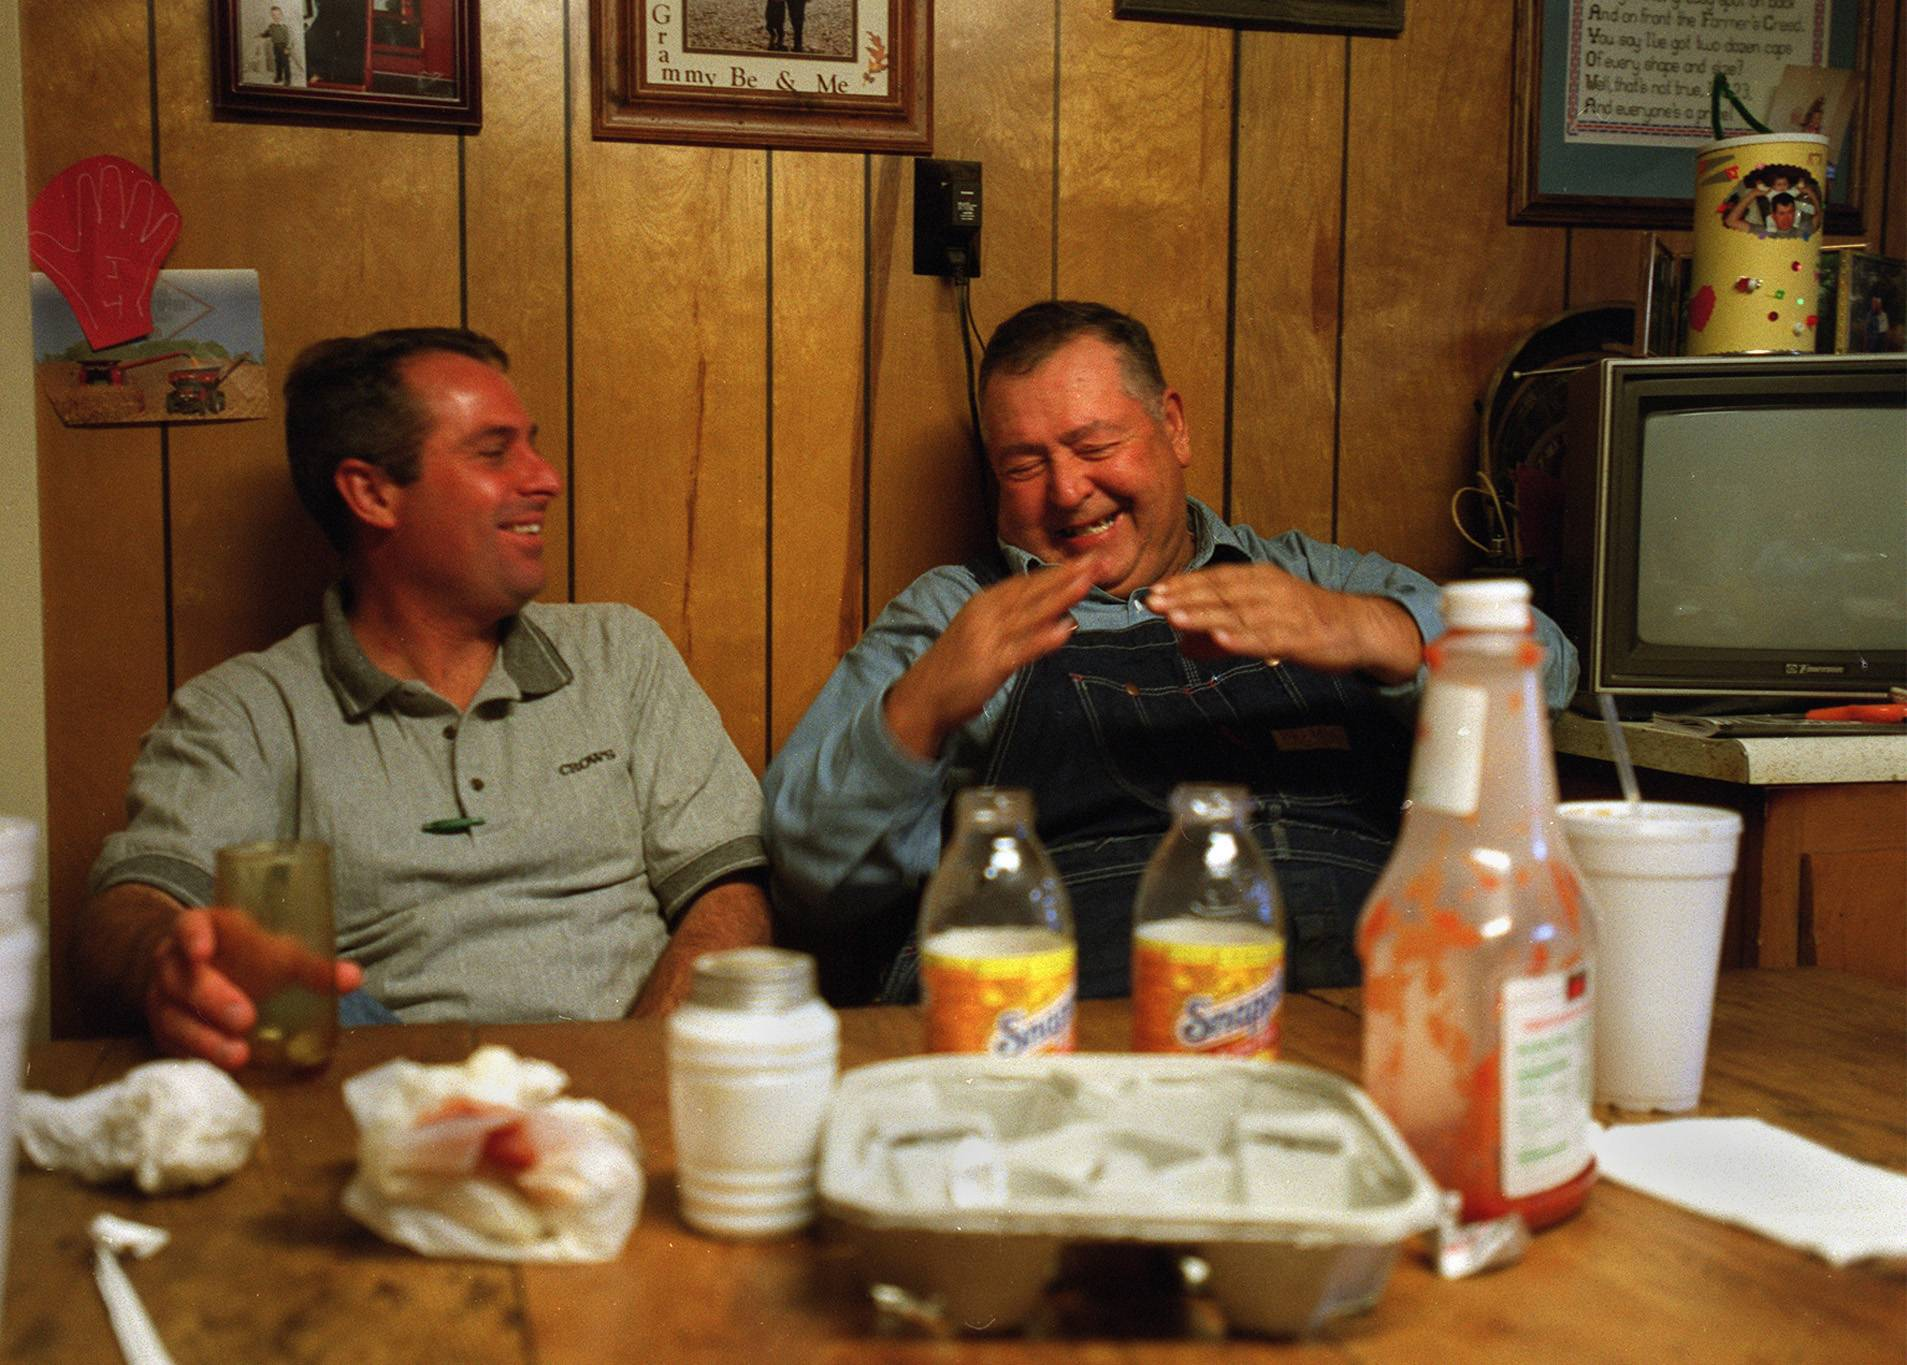 Chuck Swanson shares a laugh with family friend Randy Pauli over a lunch at the family farmhouse in Gilberts. I had the privilege of photographing members of the Swanson family on several occasions. Of all the farmers I came across in my years as a photojournalist, Chuck was one of the best. When he passed in 2008, I was touched to hear from his wife Beulah after a picture that I shot of him on his tractor was used on the cover of his memorial program.